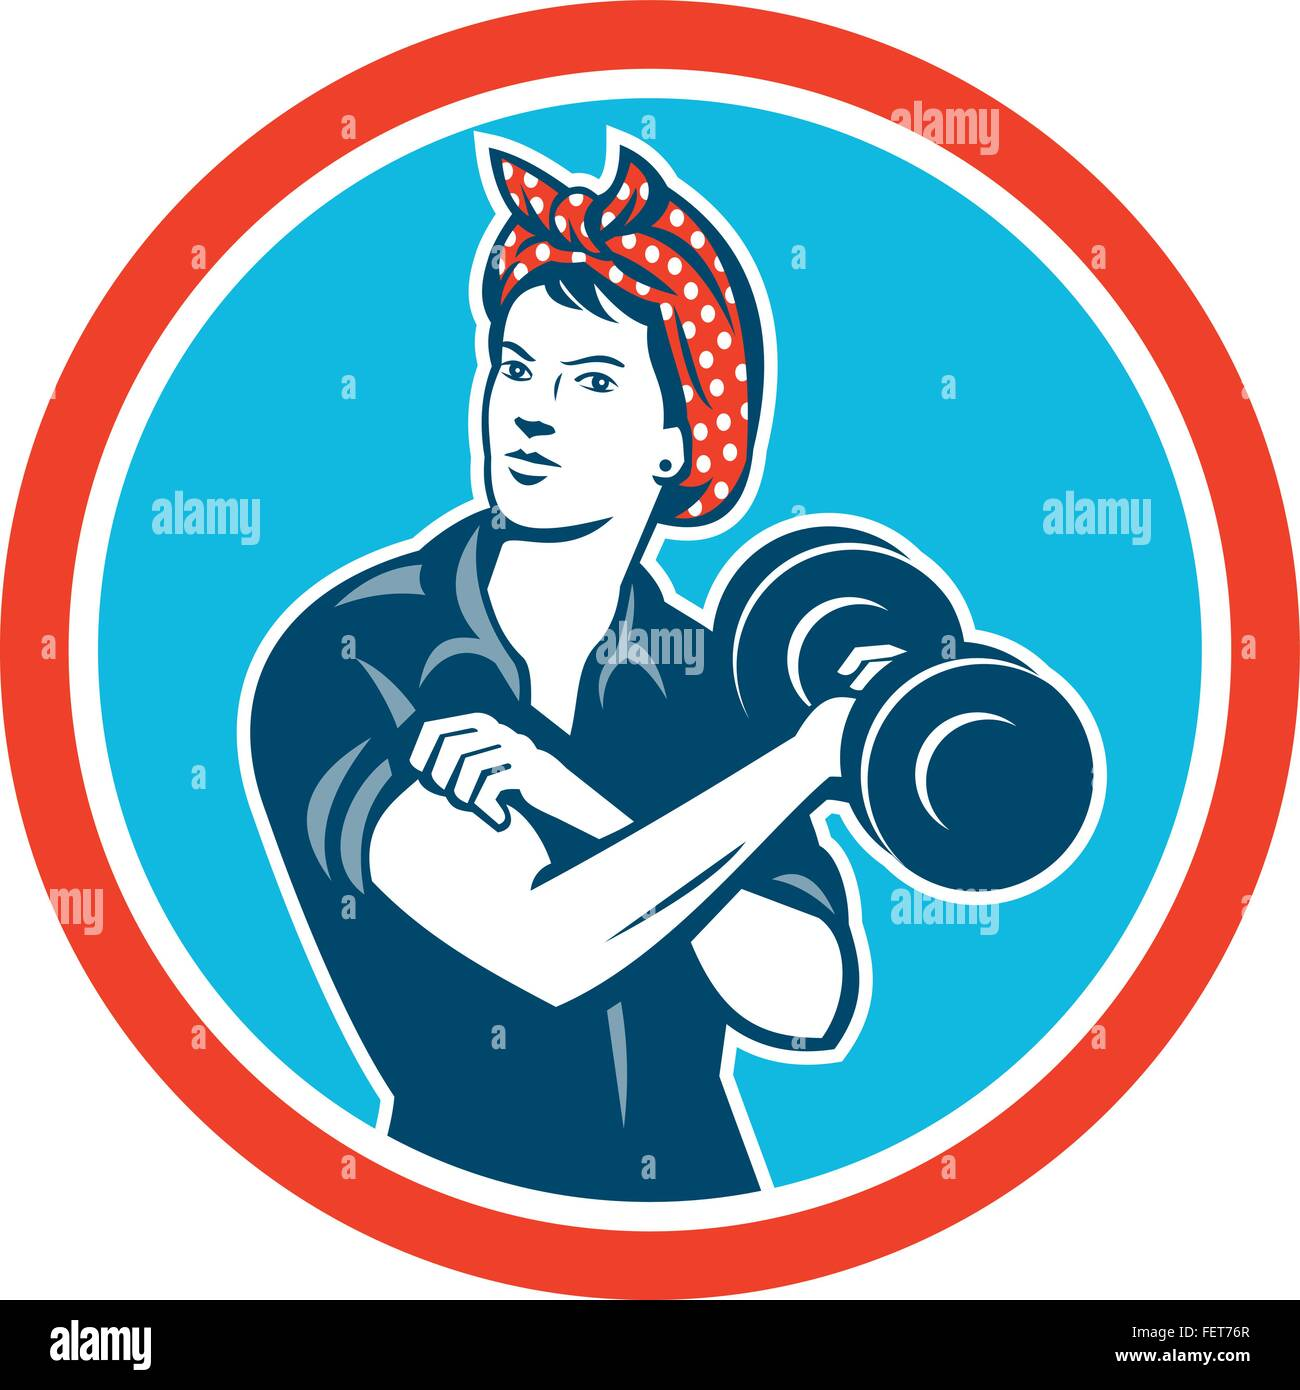 Illustration of a vintage female wearing polka dot headband working-out flexing muscle lifting dumbbell facing front - Stock Vector